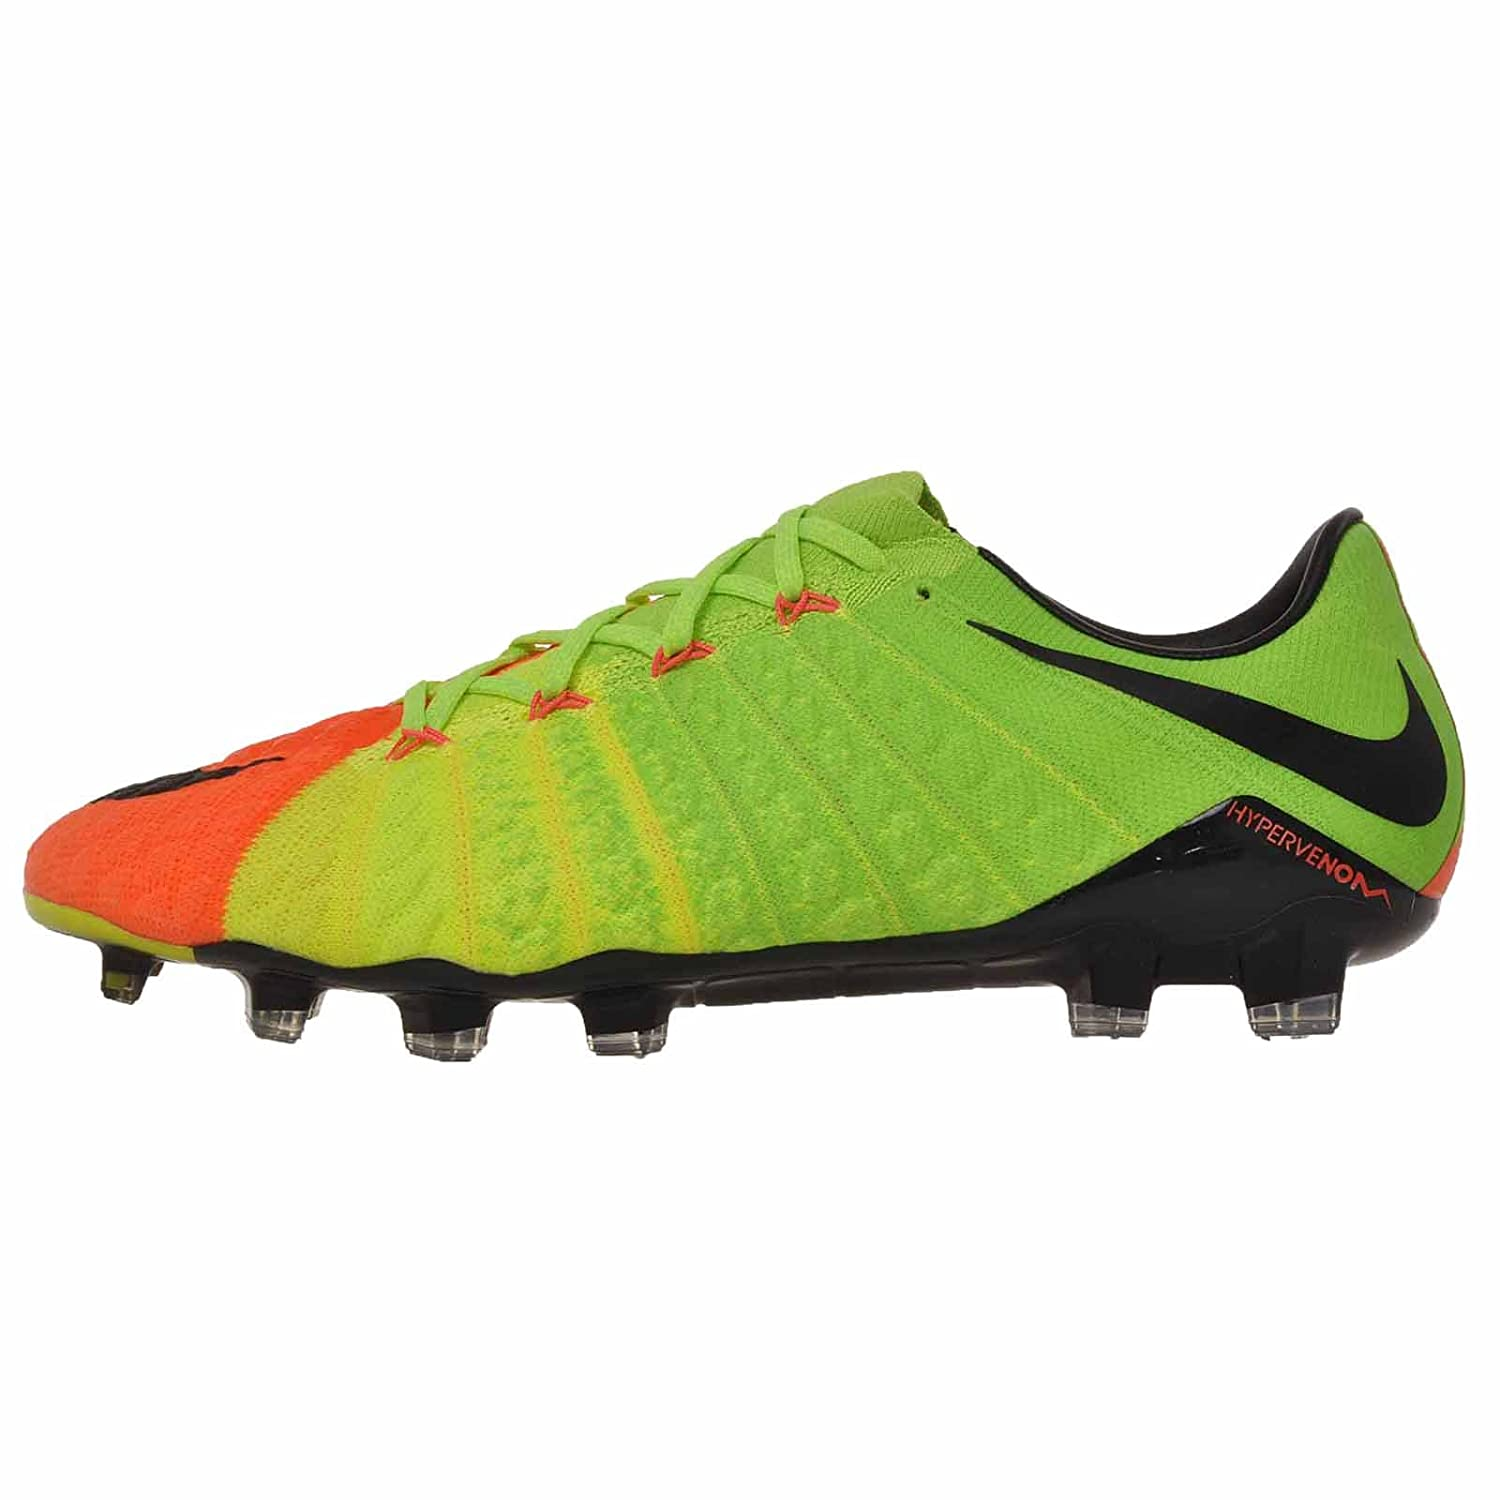 e9c9c5f45 Nike Men s Hypervenom Phantom III FG Electric Green Black Hyper Orange  Soccer Shoes